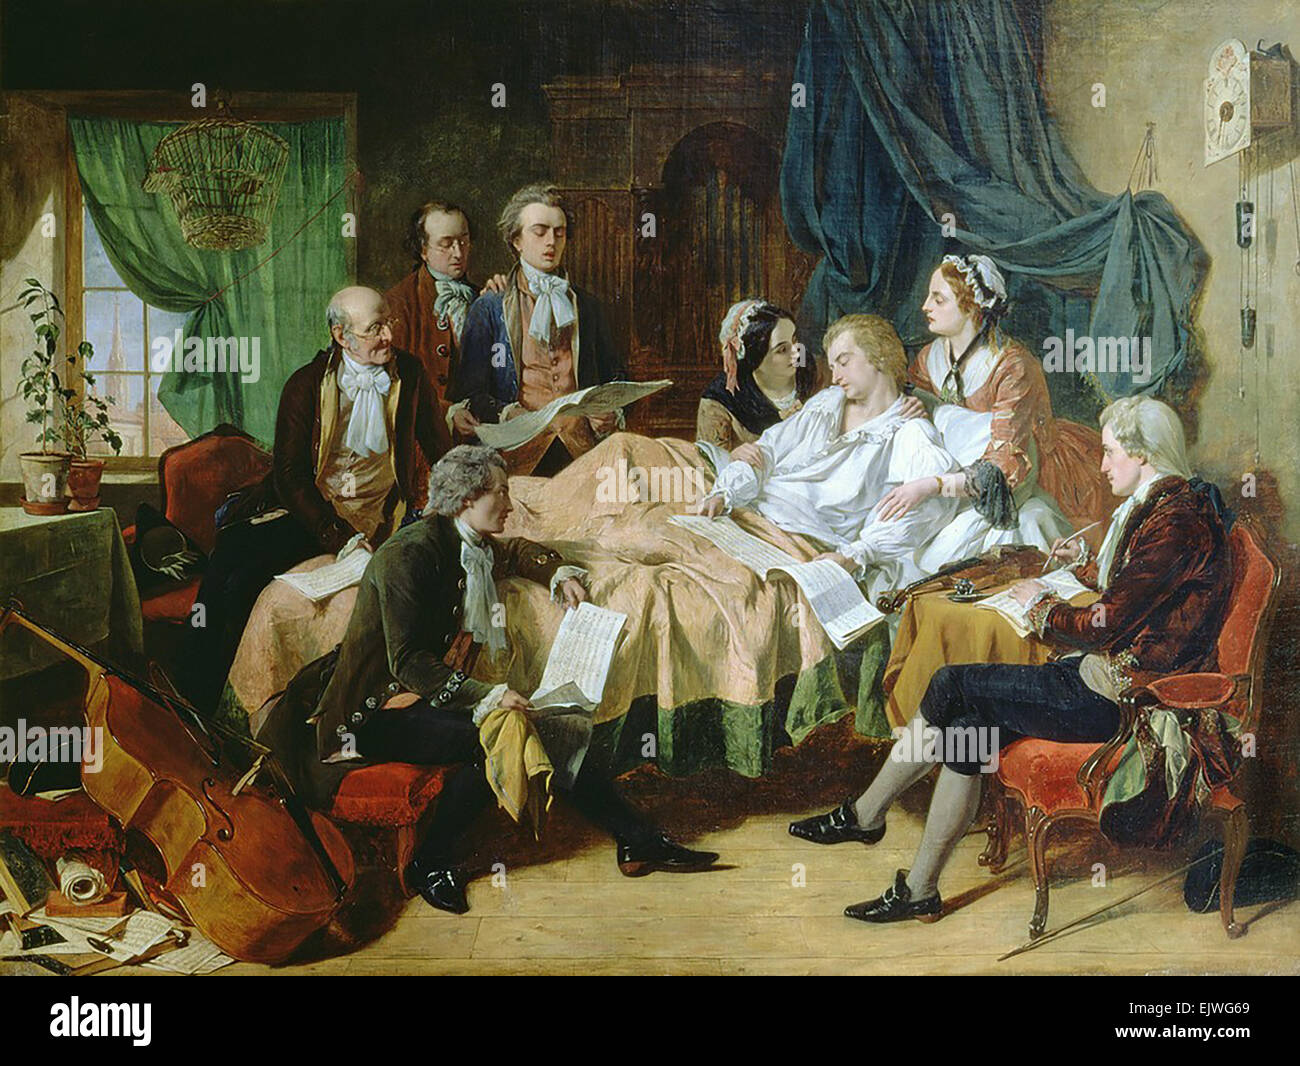 THE DEATH OF MOZART painting by Irish artist Henry O'Neill about 1870 - Stock Image